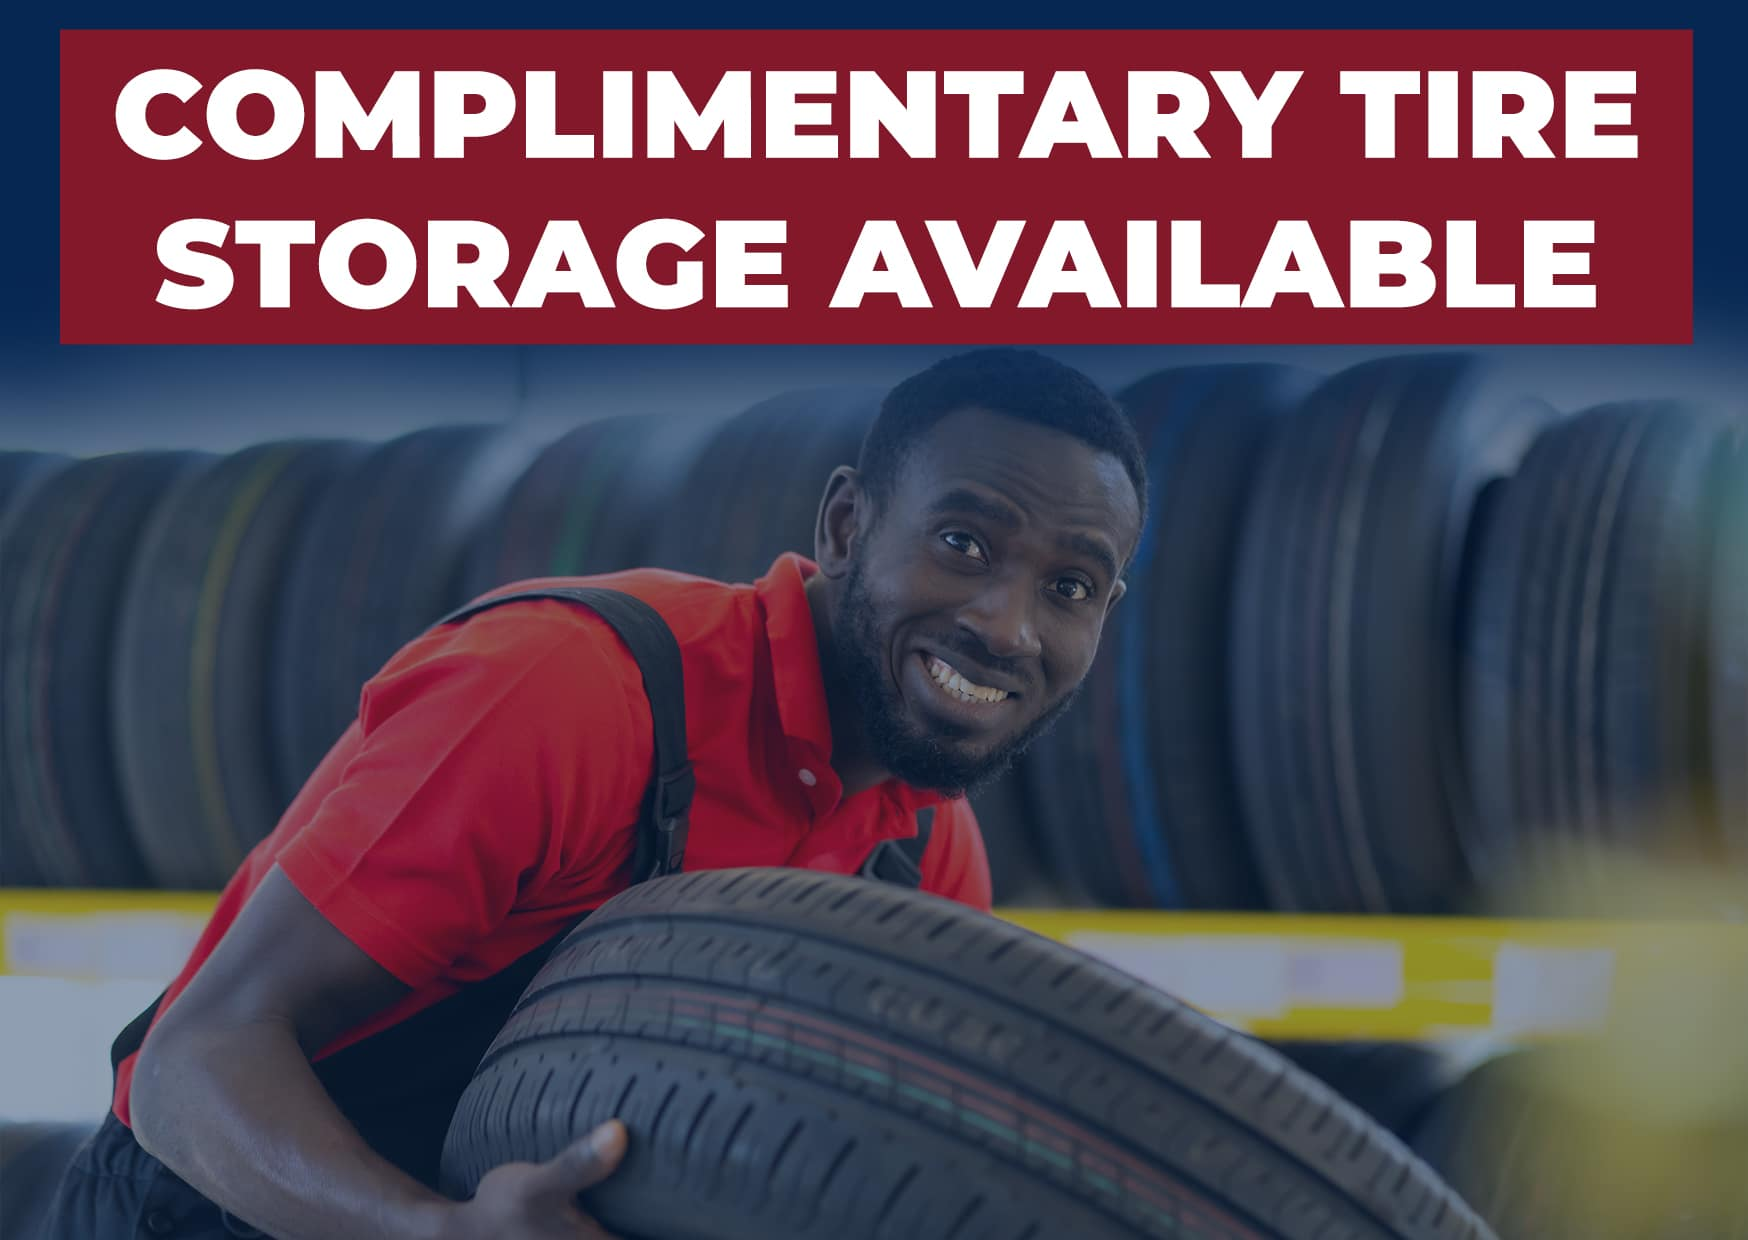 COmplimentary Tire Storage Available(1)